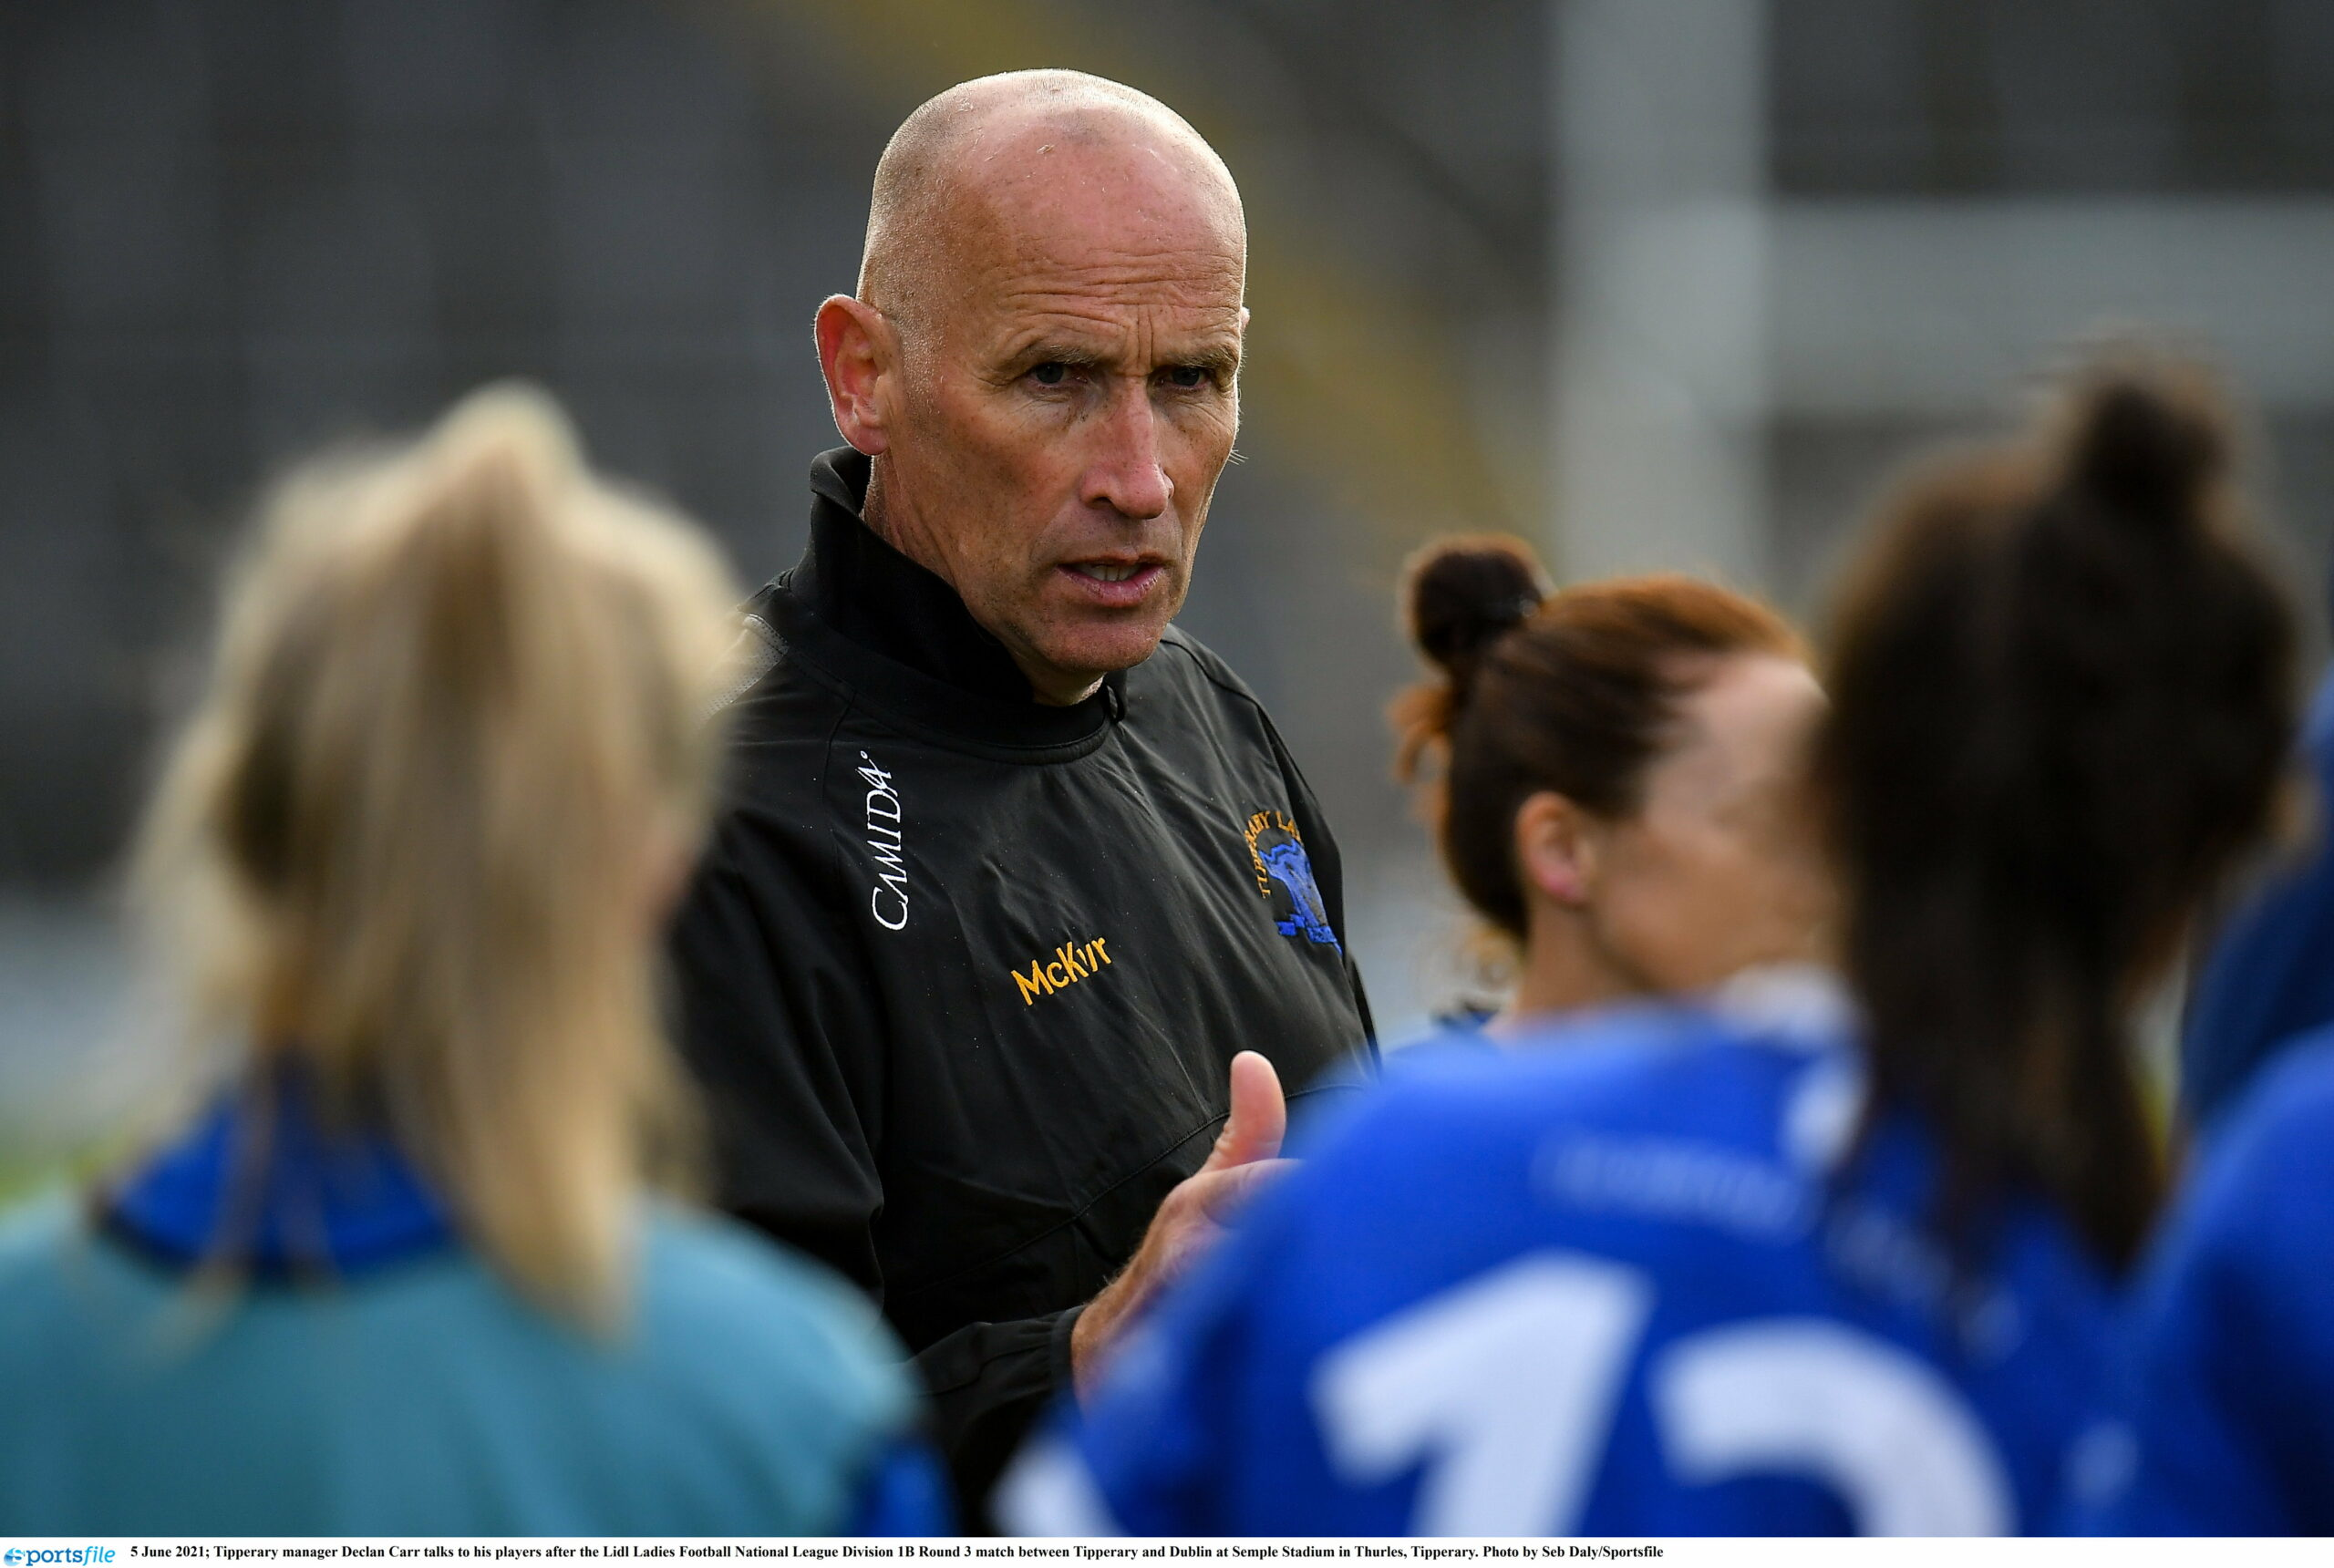 Busy man – The Big Interview with Declan Carr of Tipperary